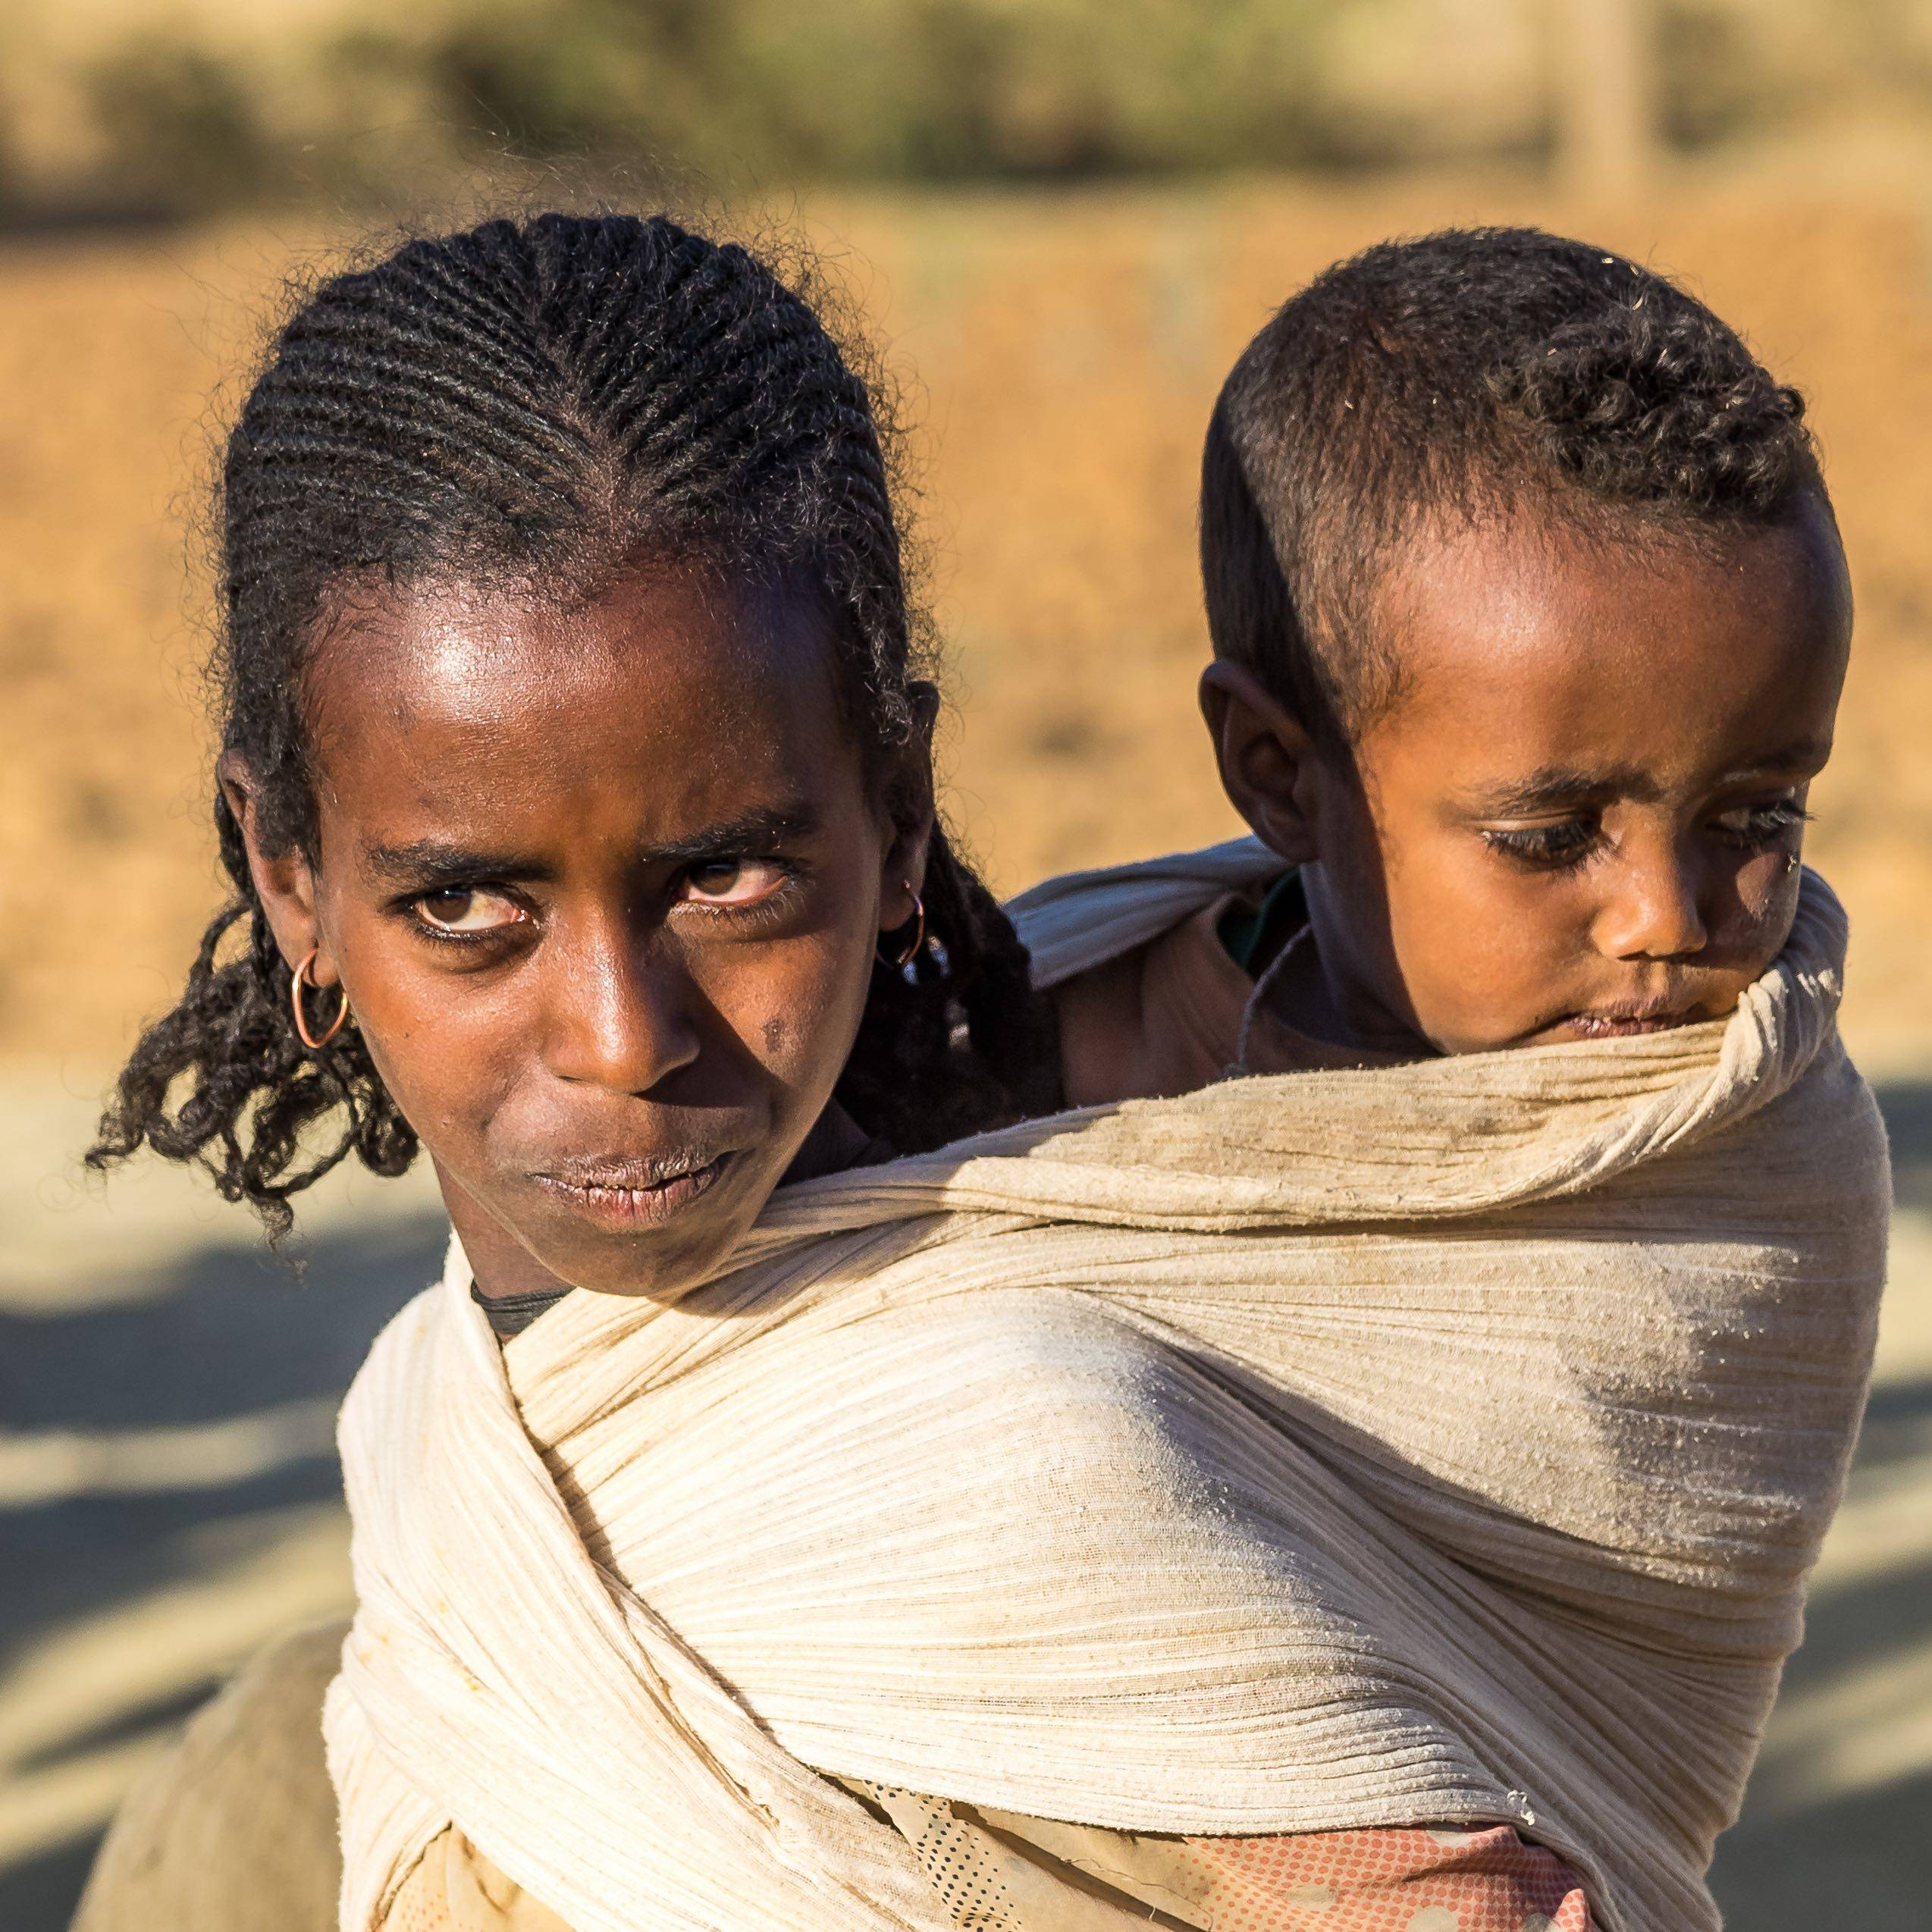 Ethiopian girl with child on her back on roadside in Tigray